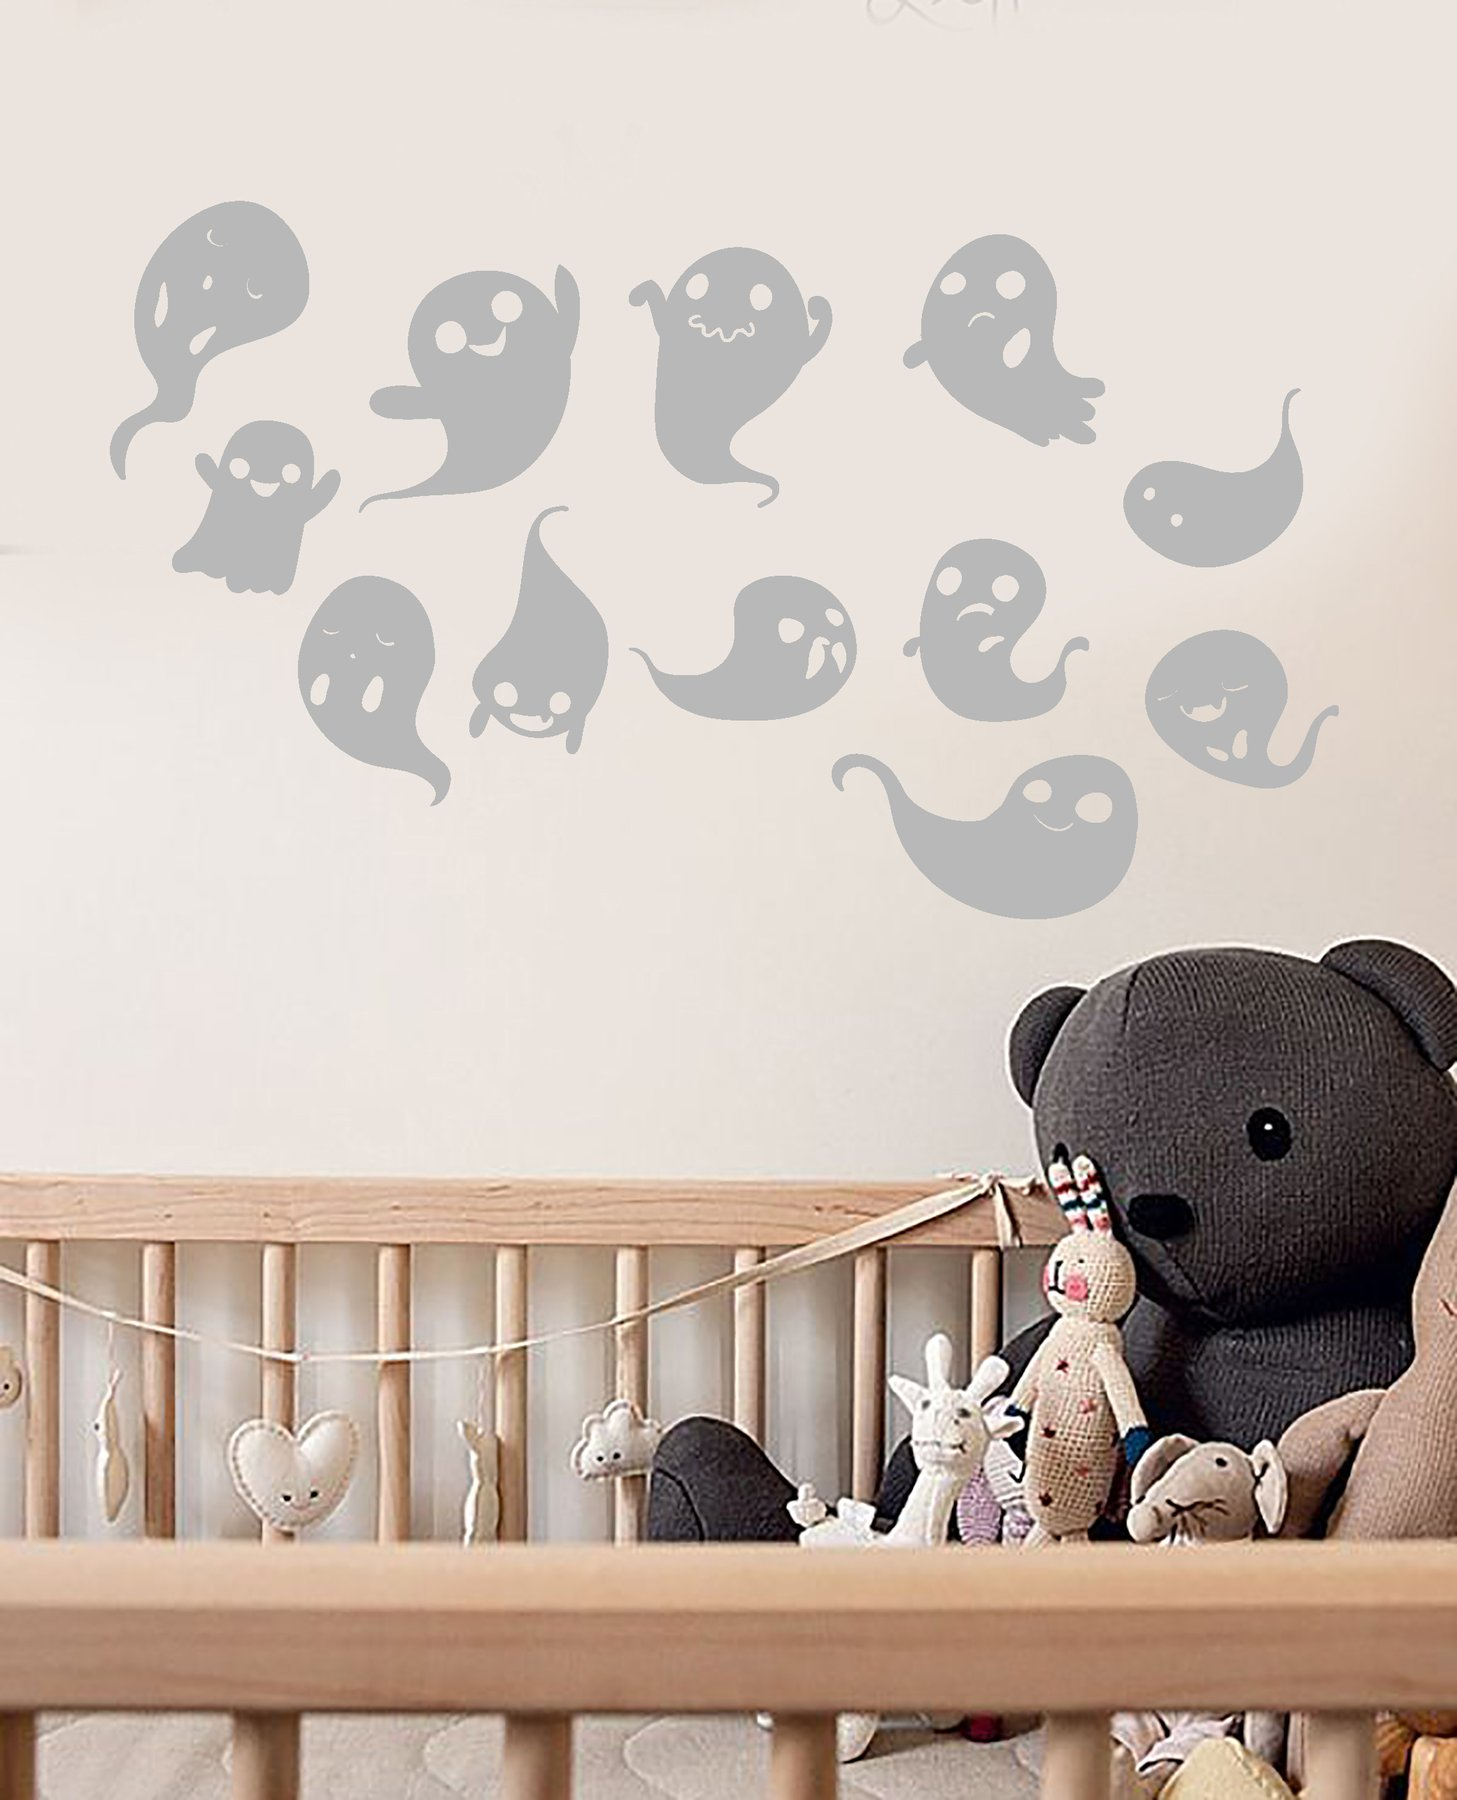 Vinyl Wall Decal Cartoon Ghost Spook Halloween Decor Stickers  Home Living Room Window Decal WSJ14-in Wall Stickers from Home & Garden